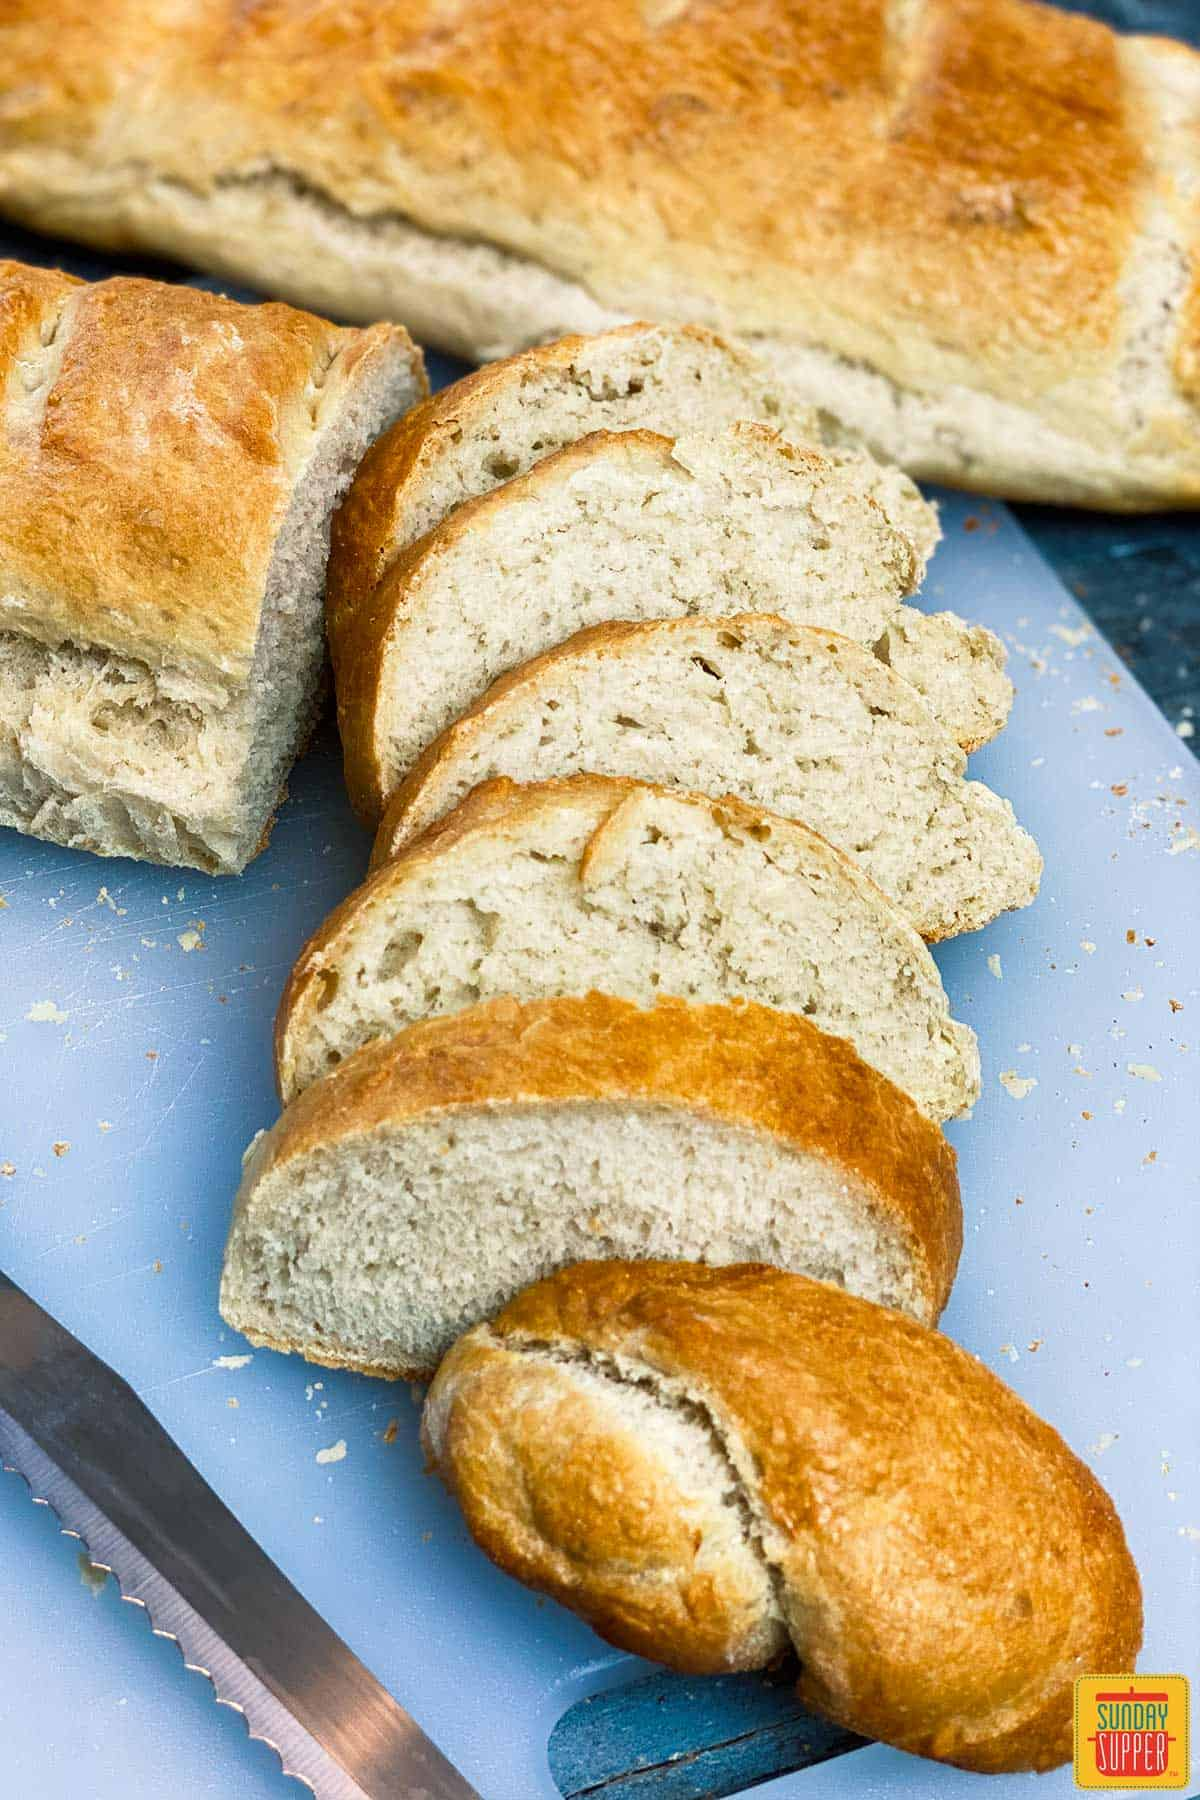 How to make french bread - A loaf of homemade french bread cut into slices